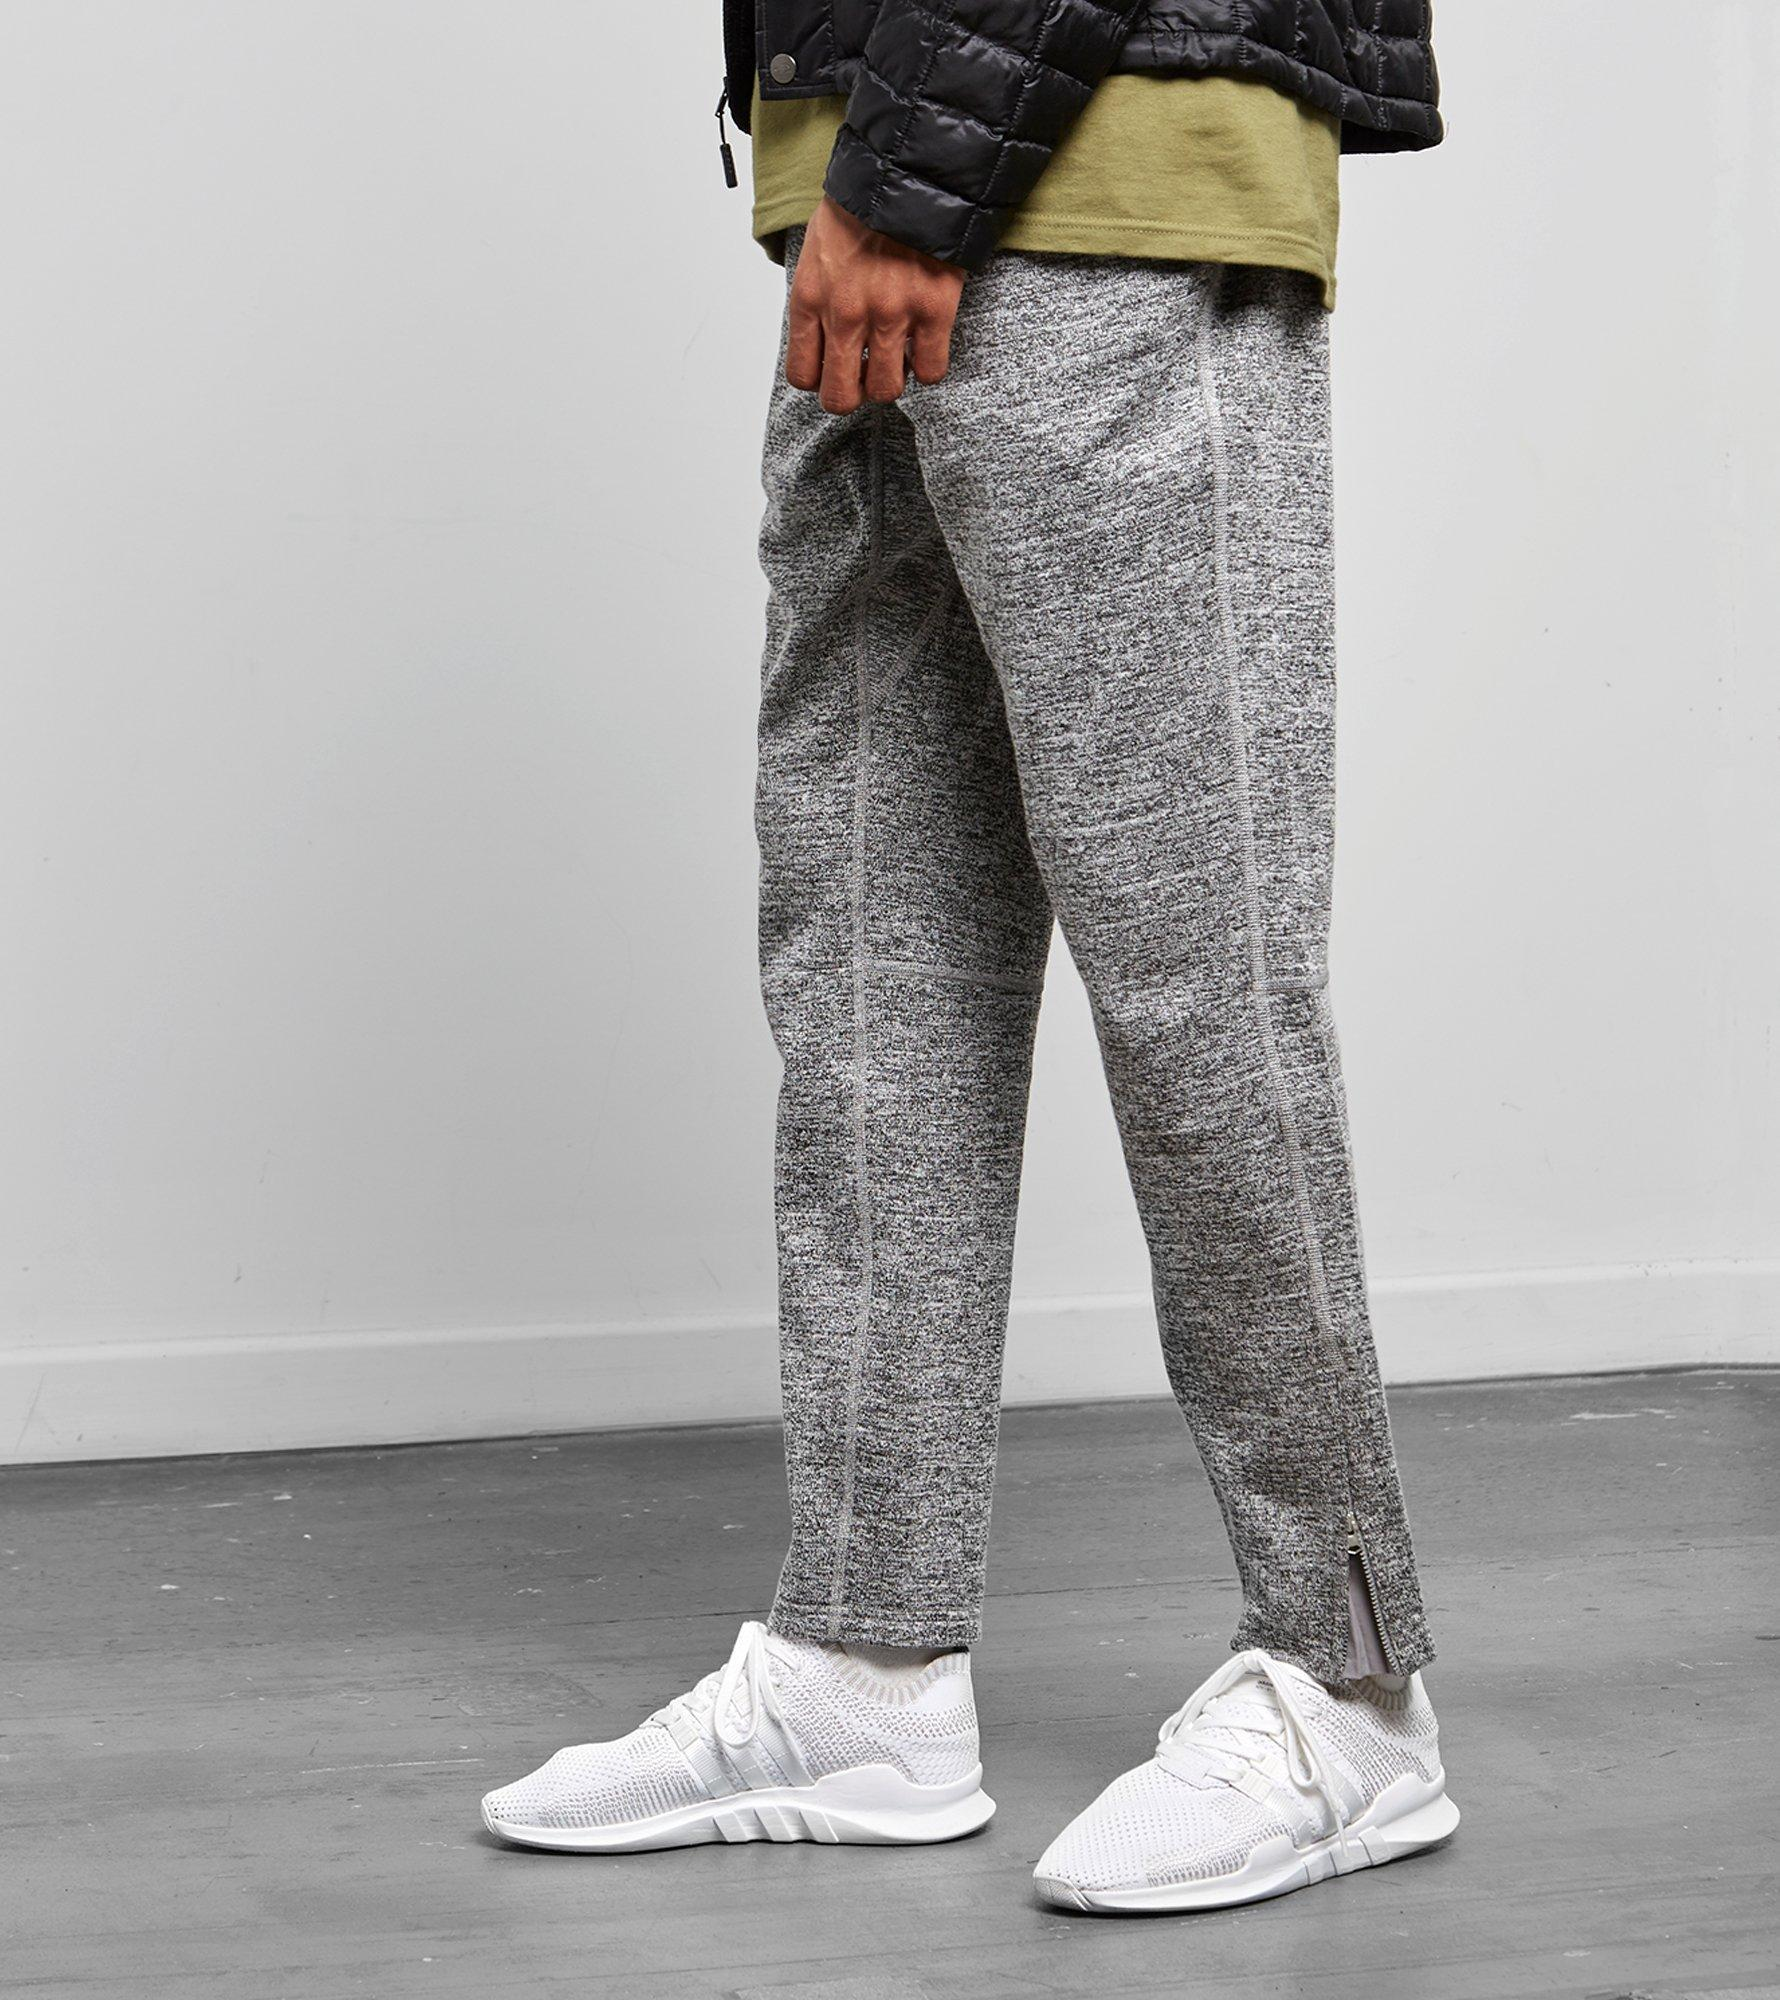 88b6c0511 adidas X Reigning Champ Pants in Gray for Men - Lyst